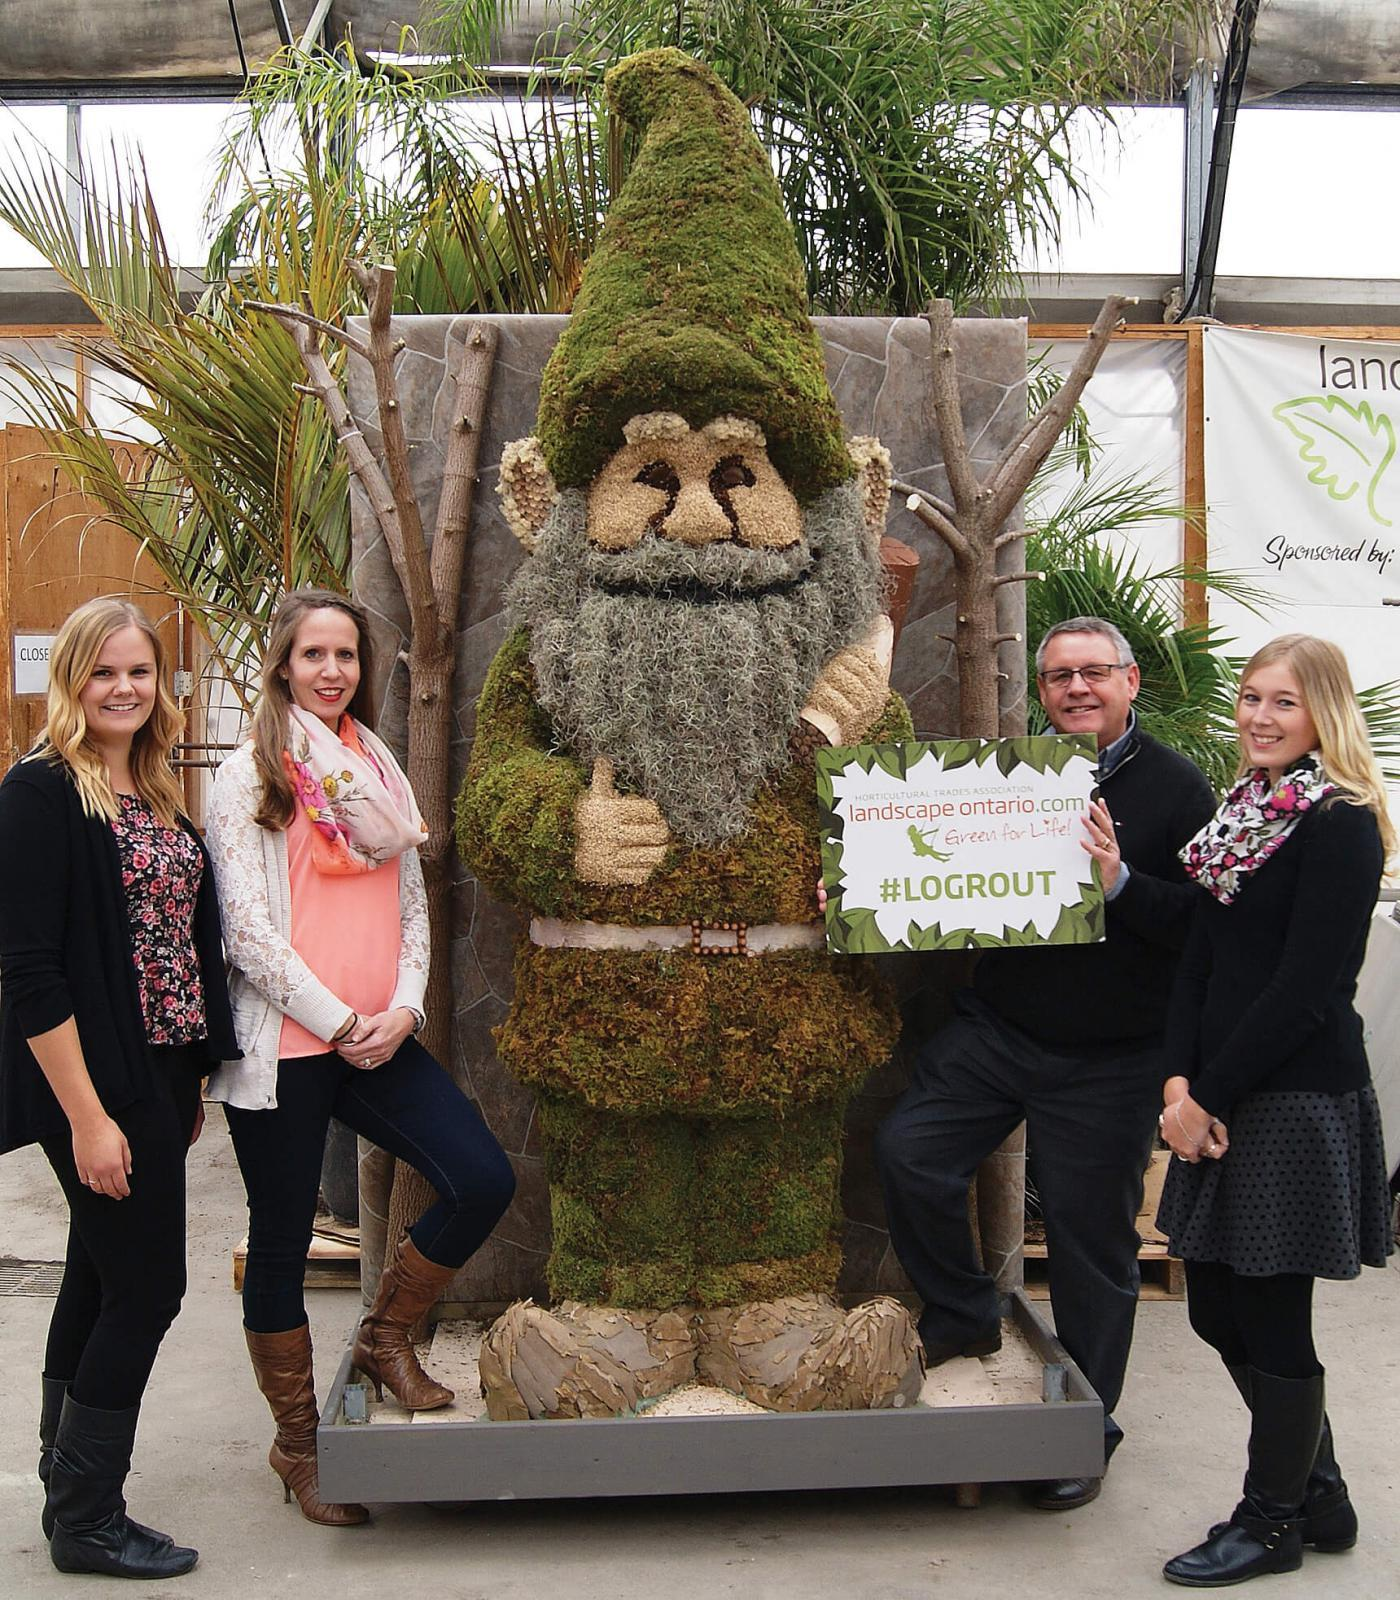 Grout the giant gnome is ready for a starring role in 2016 with his team of LO membership department staff, from left, Cassandra Wiesner, Rachel Cerelli, Denis Flanagan and Myscha Burton.